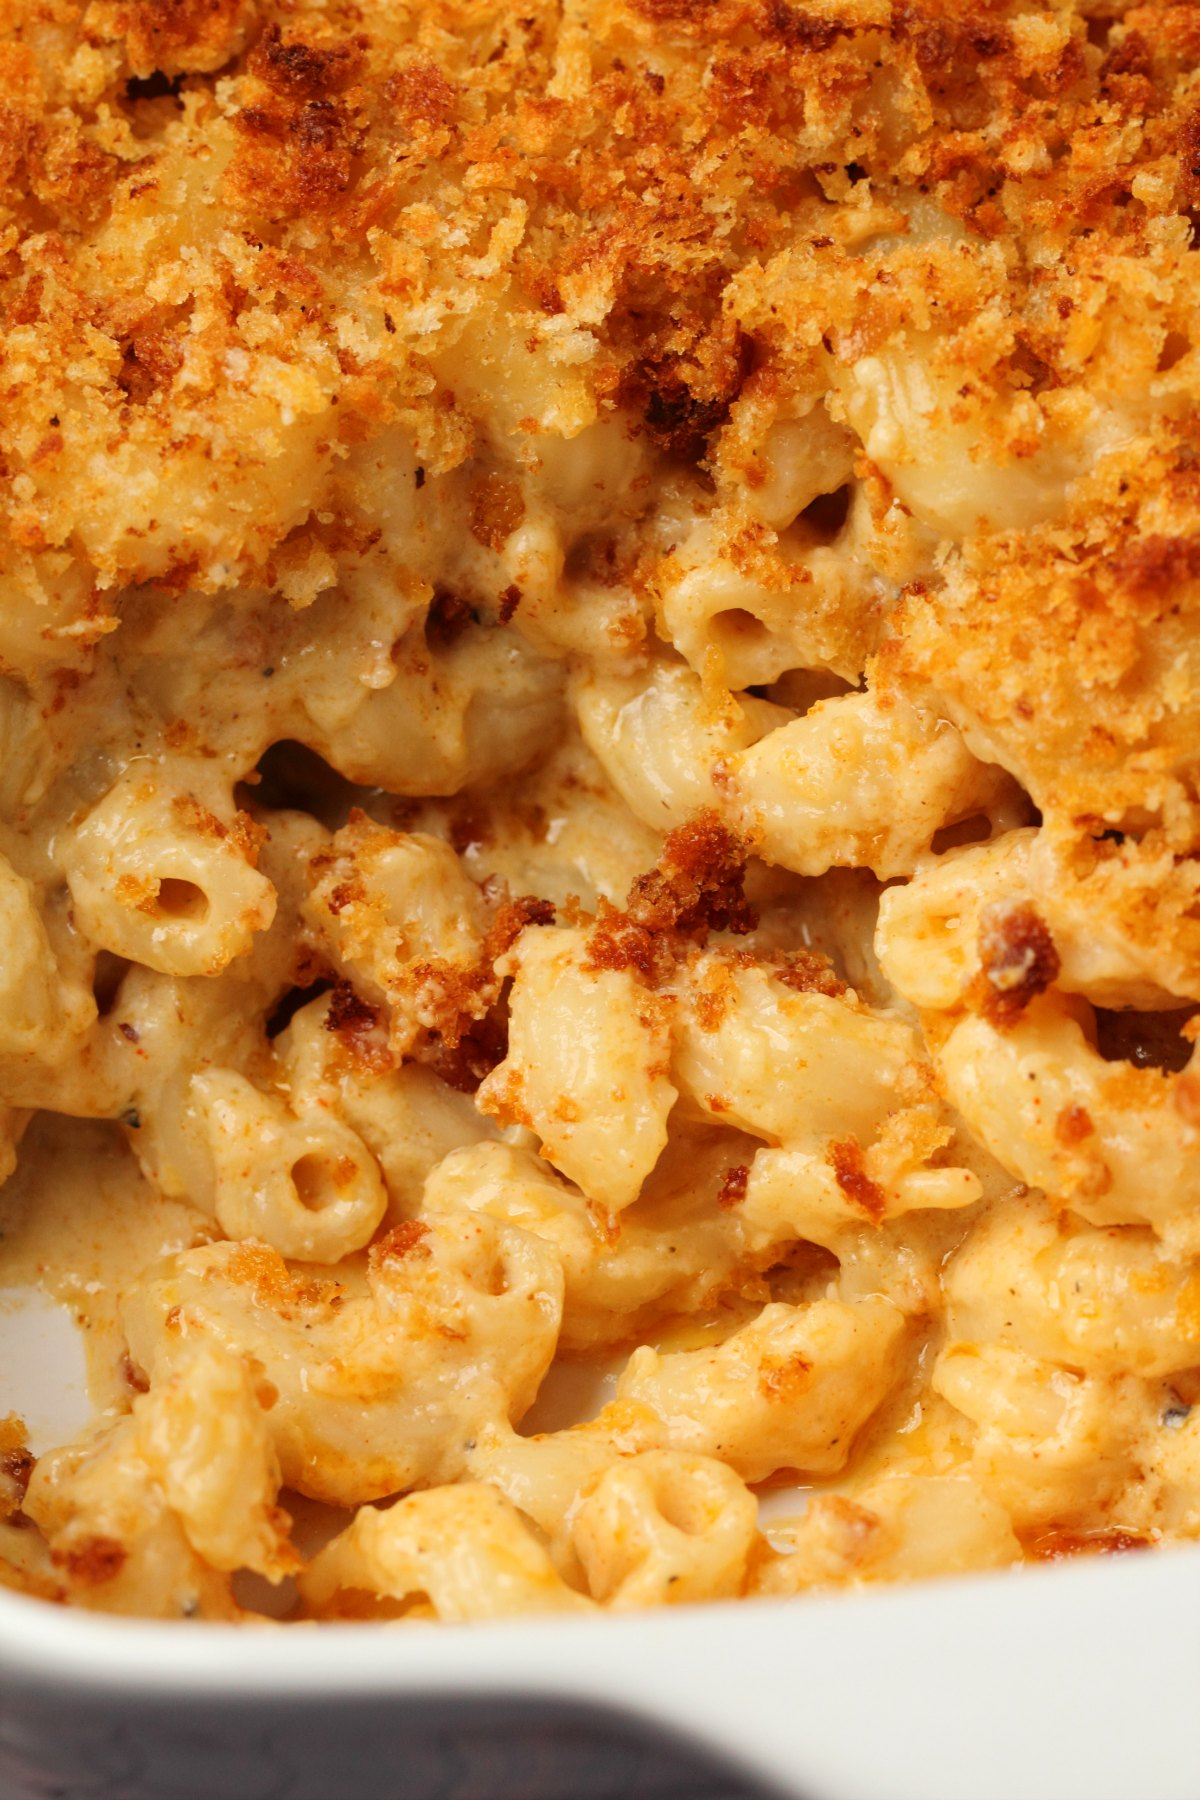 Baked vegan mac and cheese in a white dish.